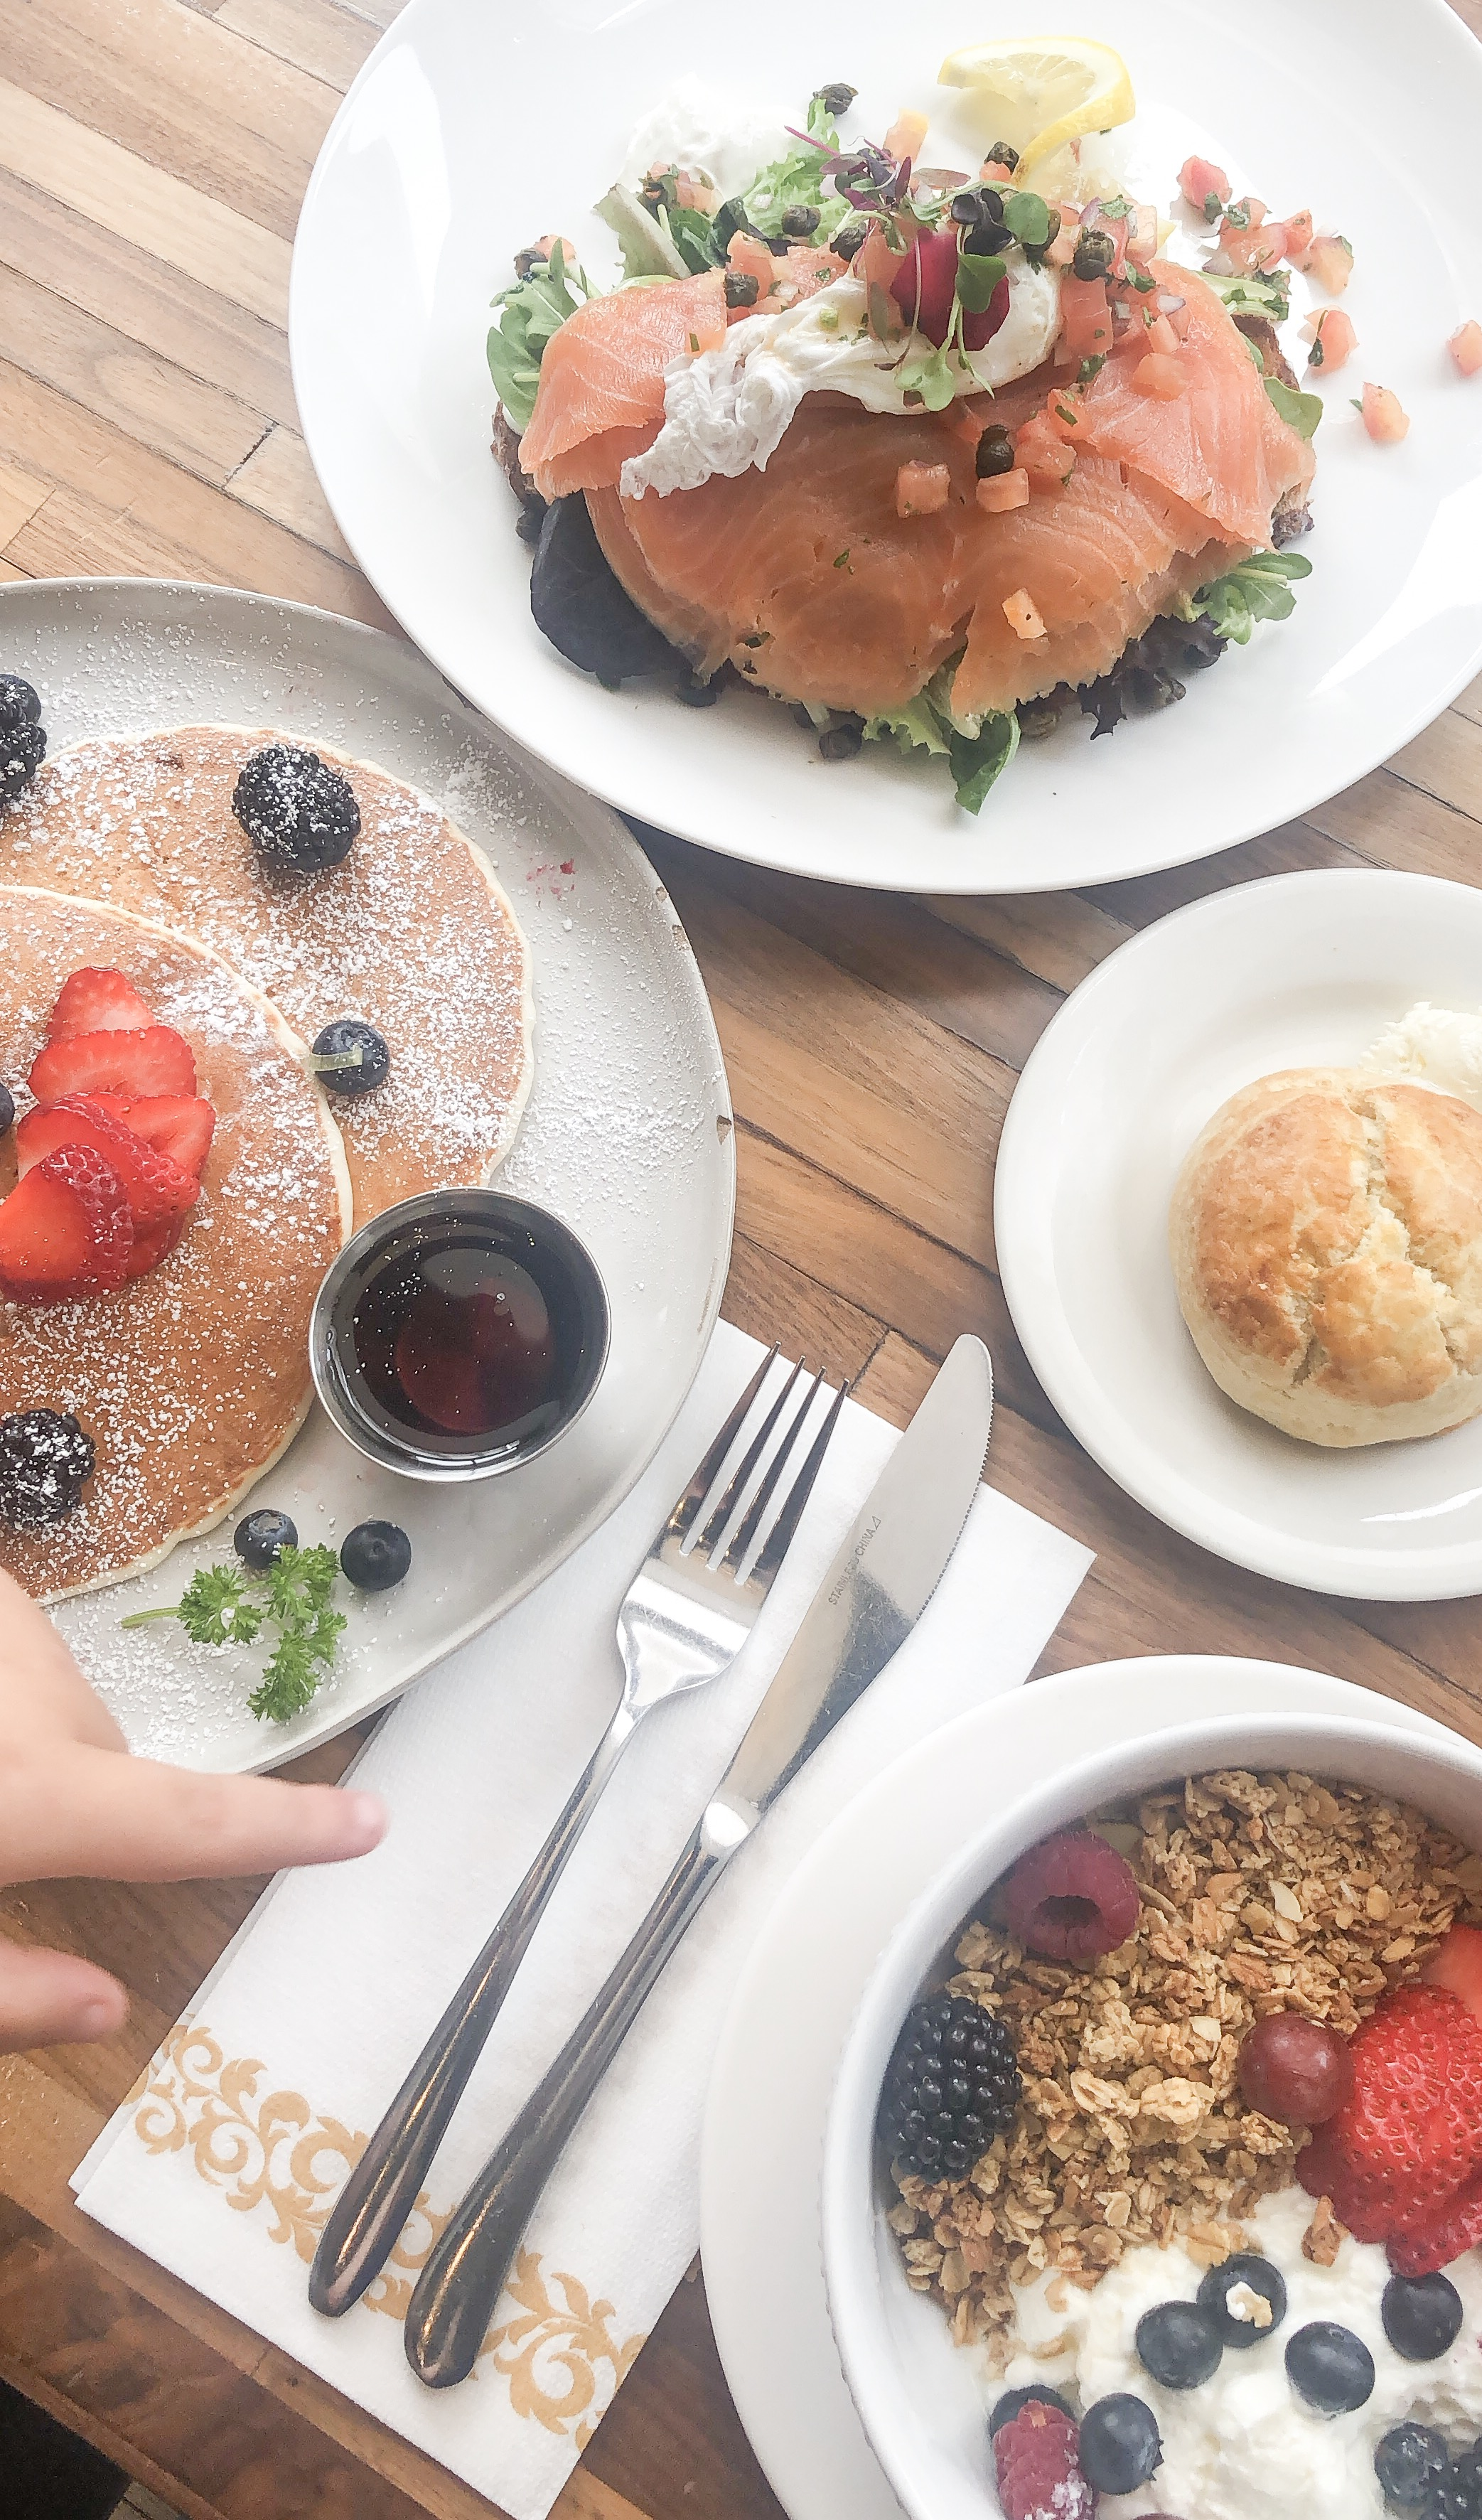 best breakfast San Francisco #sanfrancisco #Travelguide #breakfast